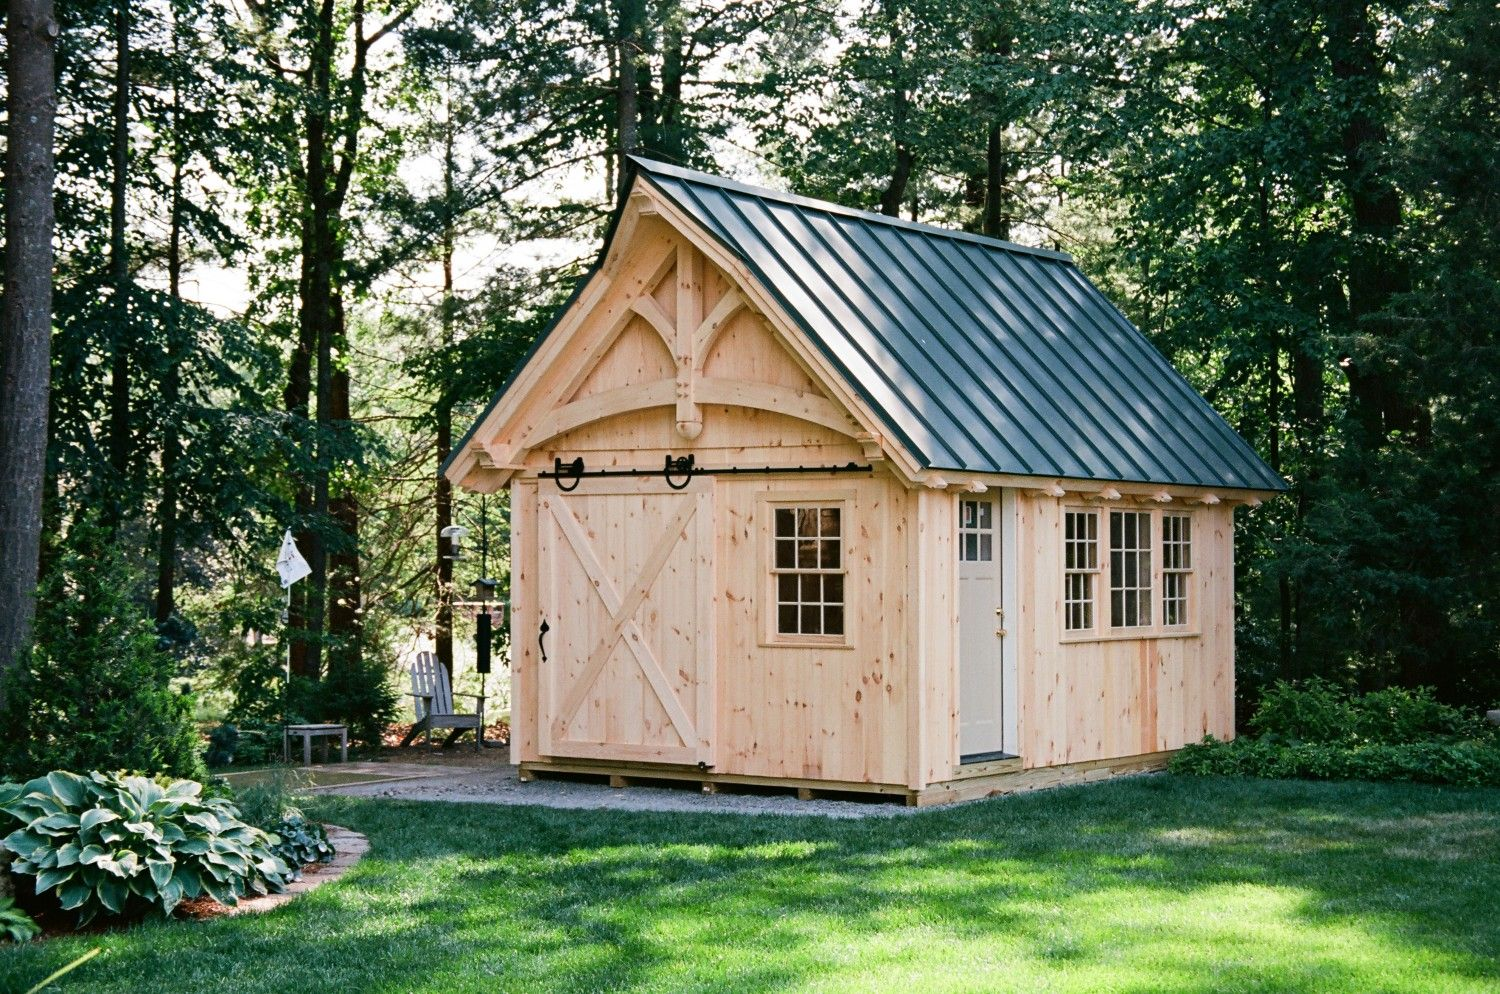 Grand Victorian Timber Frame Shed The Barn Yard Great Country Garages Victorian Sheds Post And Beam Shed Wood Shed Plans